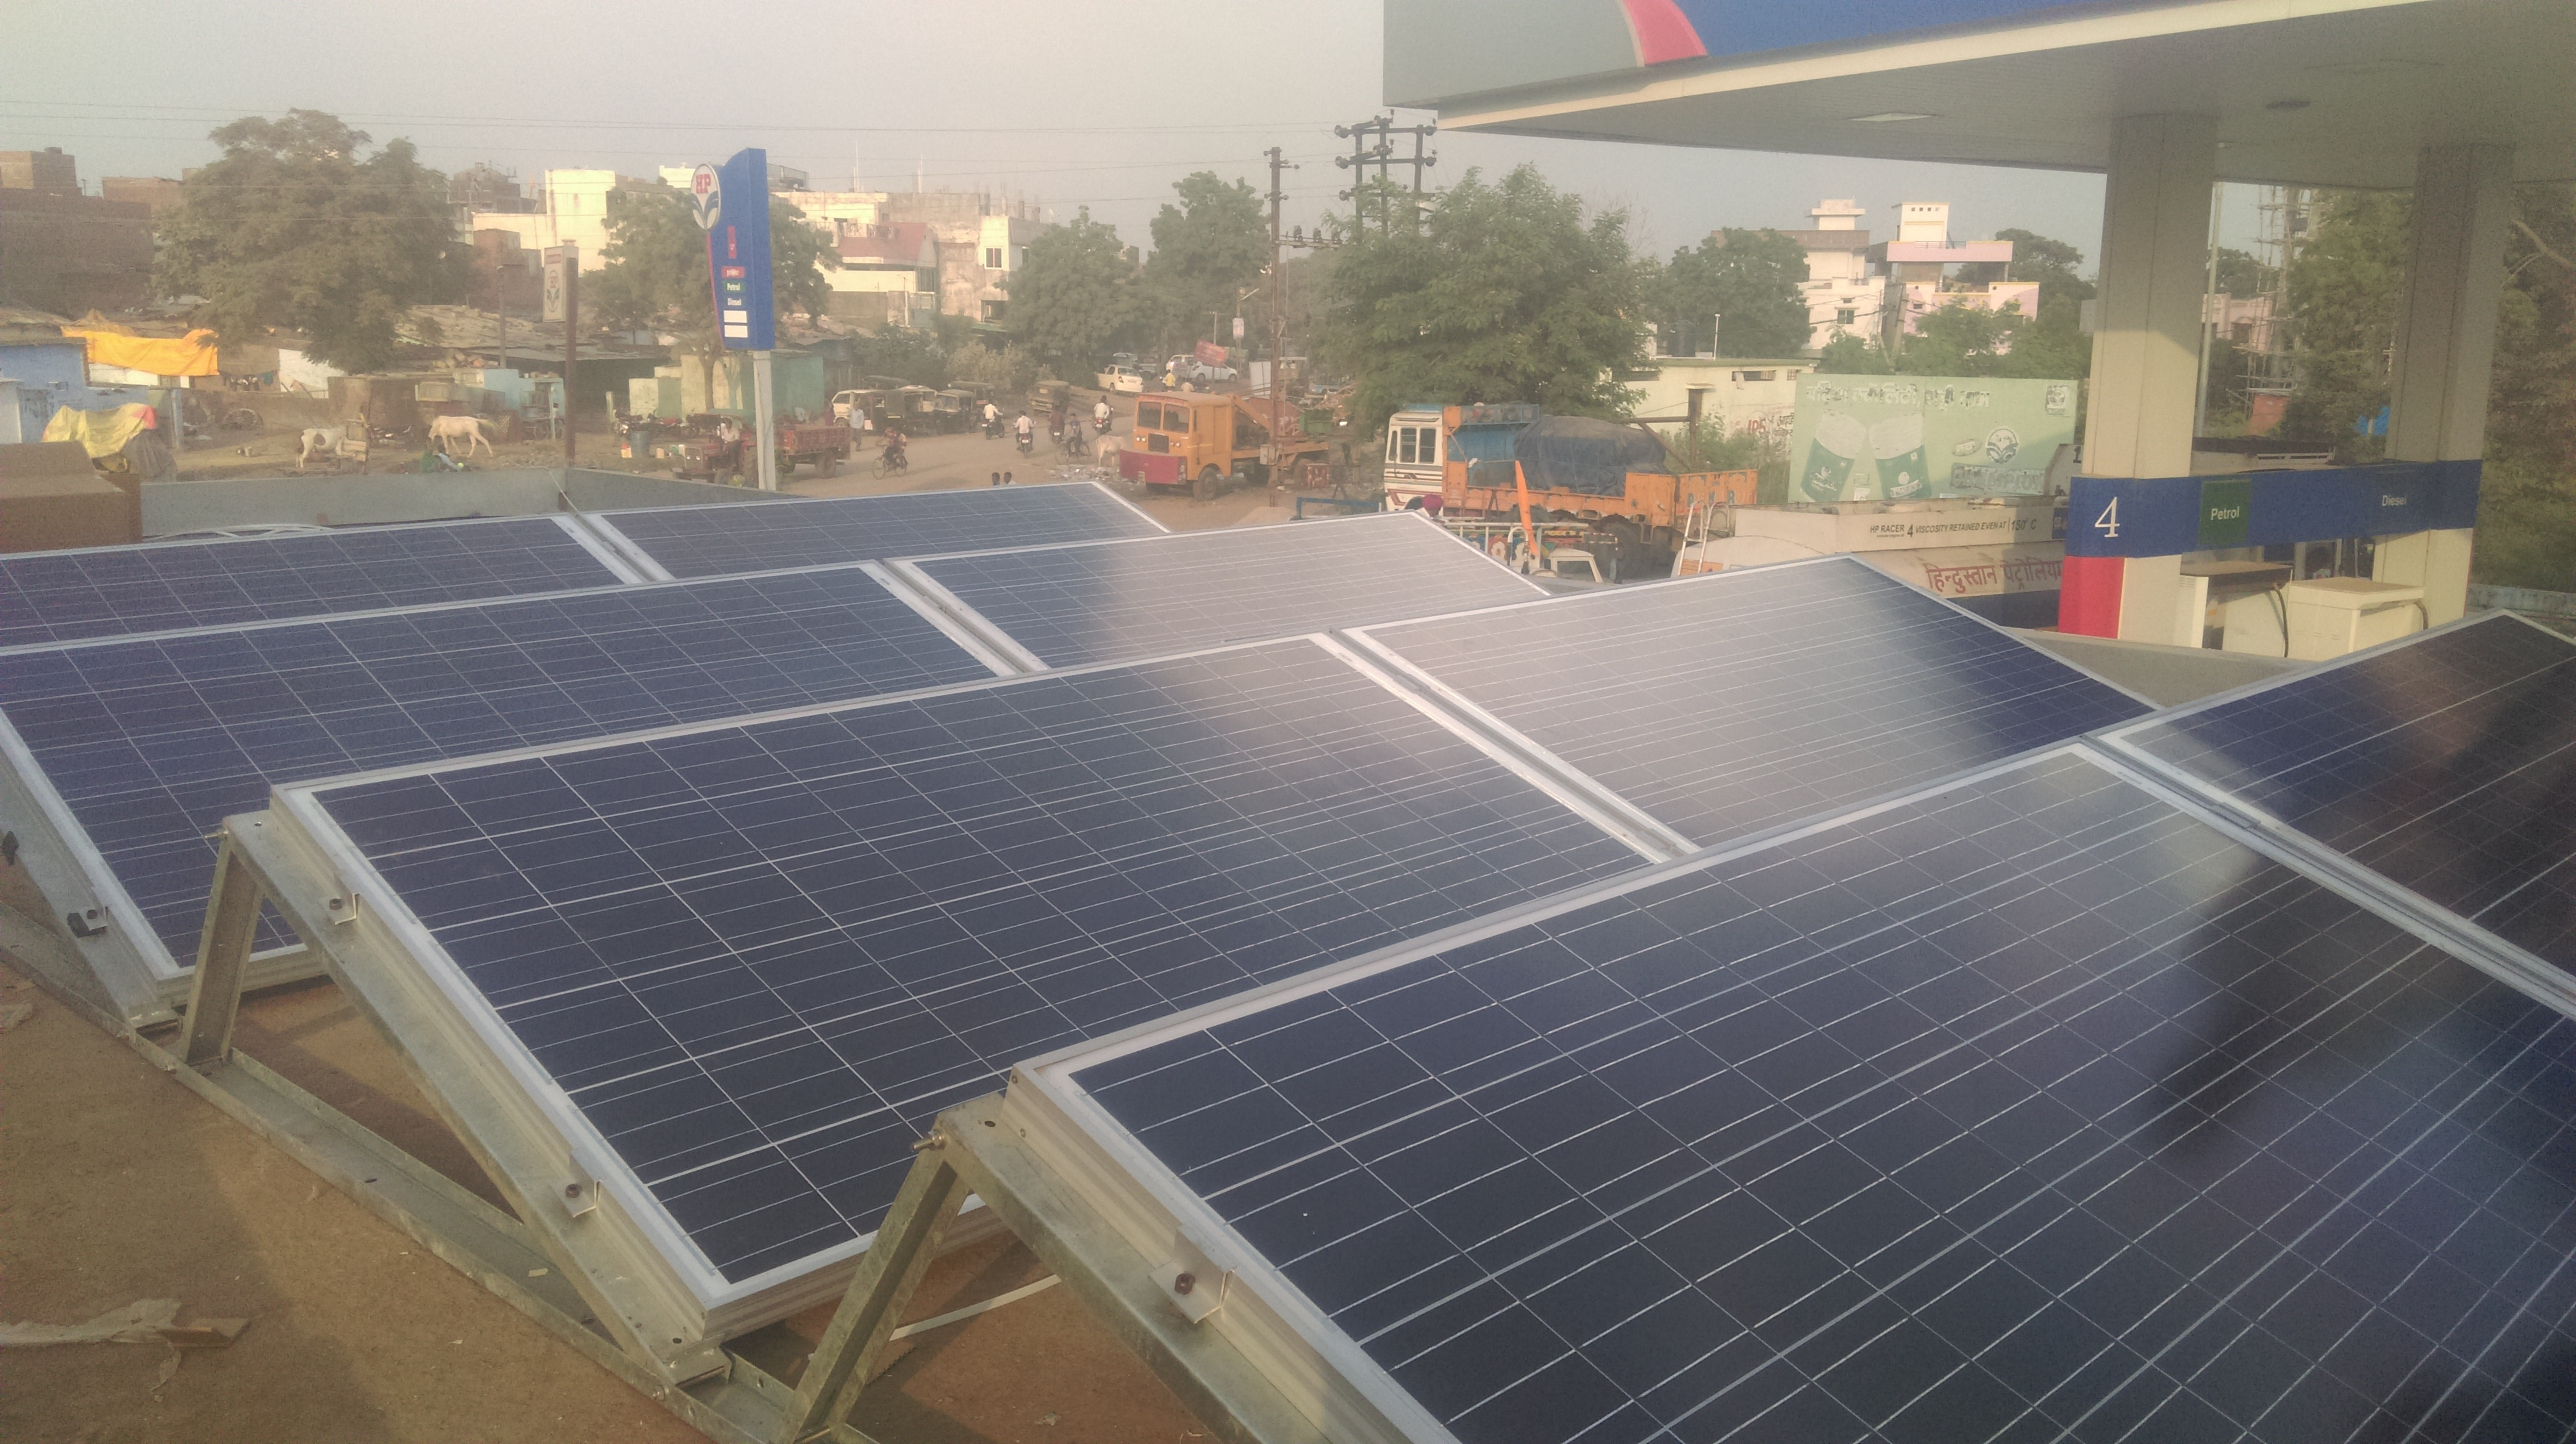 Generate power by using TATA POWER SOLAR system.We are MNRE approved company and certified vendor by MPEB for NET METERING policy in MP. From application for Net Metering to Installation of Solar Power System under on roof please contact us